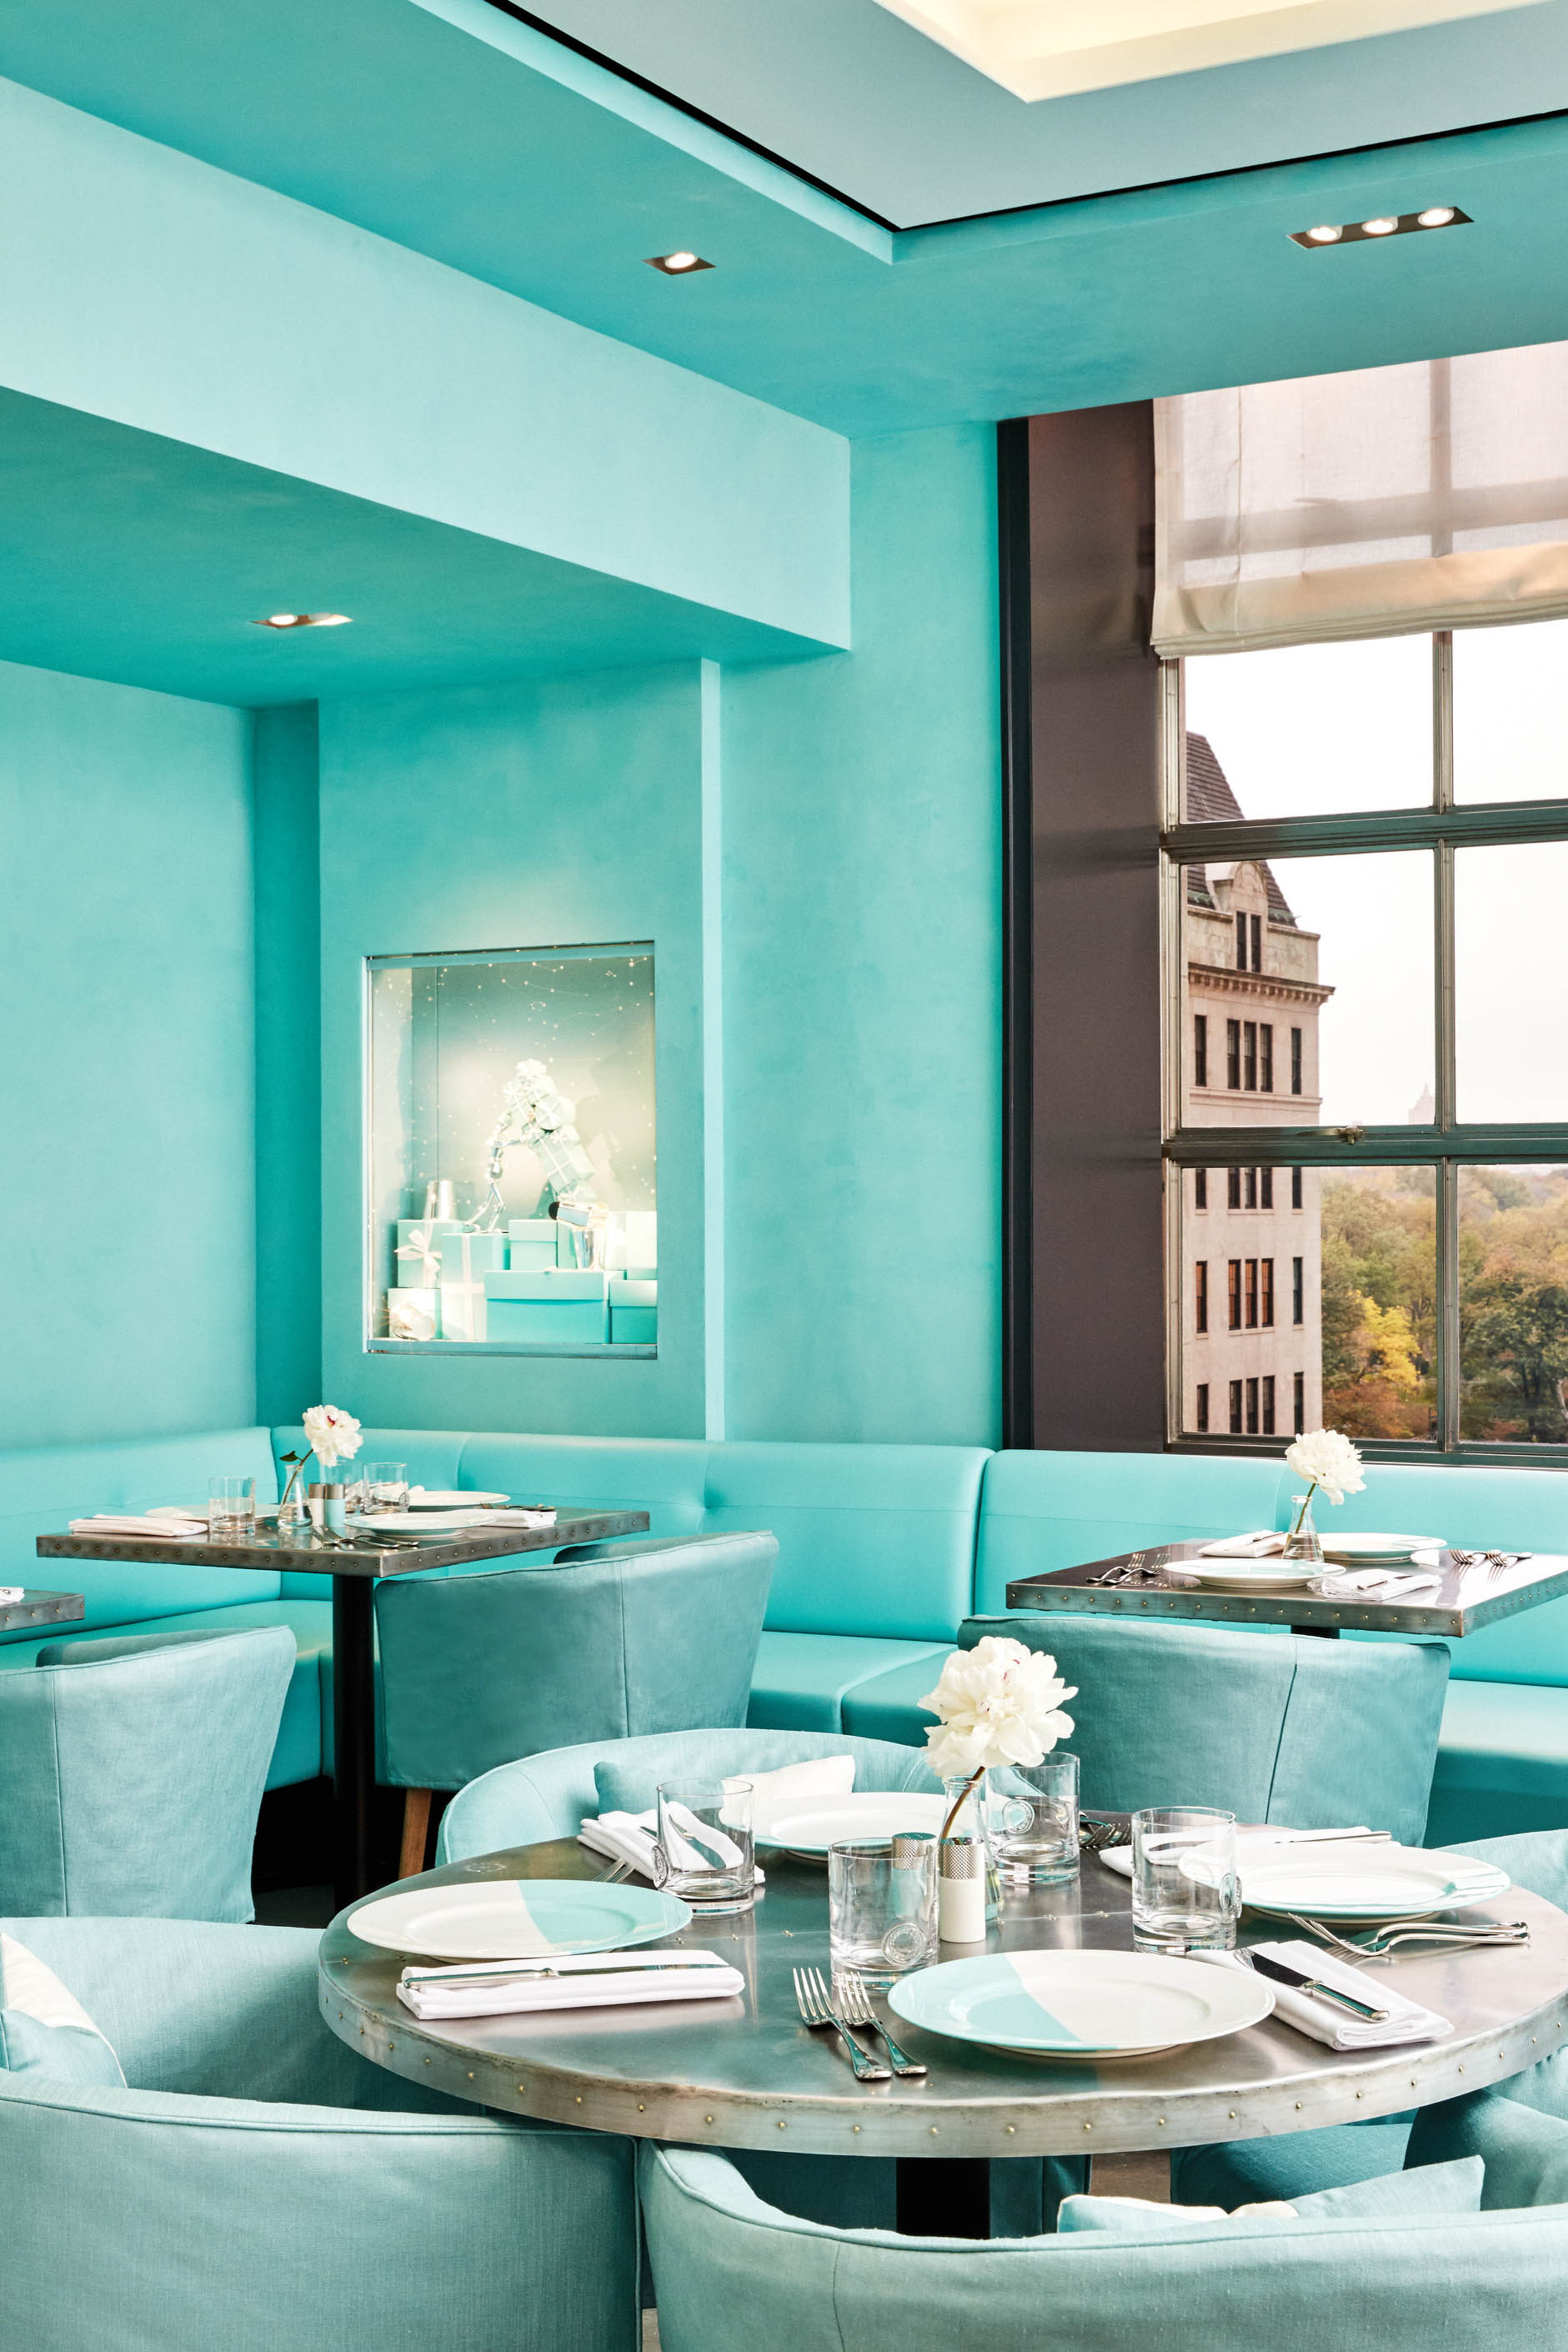 suelovesnyc_tiffanys_cafe_tiffany_cafe_the_blue_box_cafe_new_york_fifth_avenue